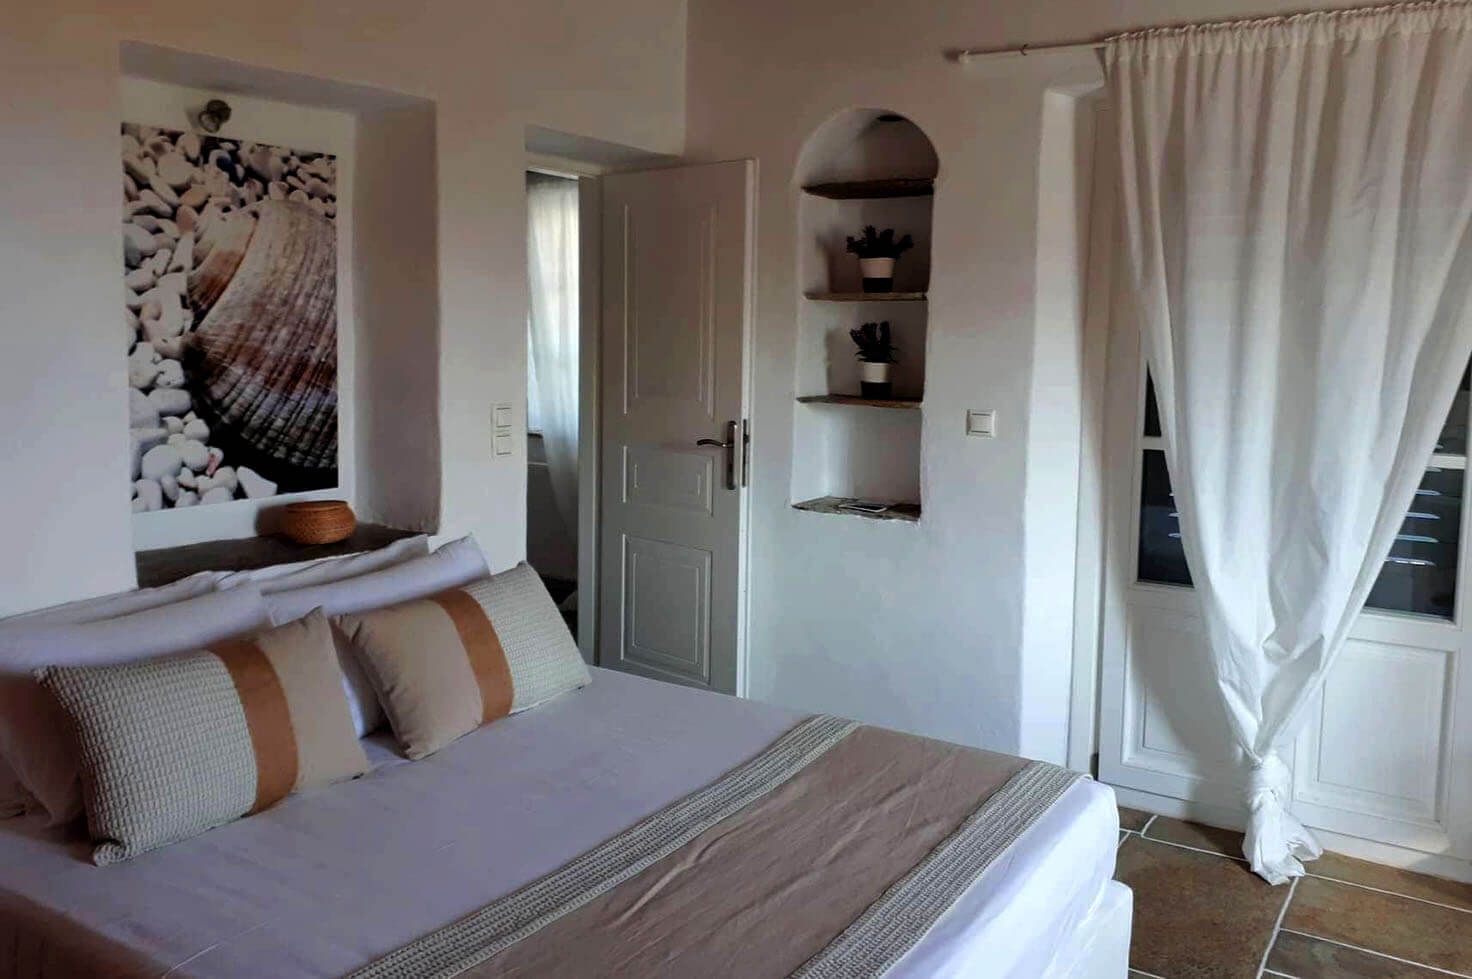 Hotels in Apollonia